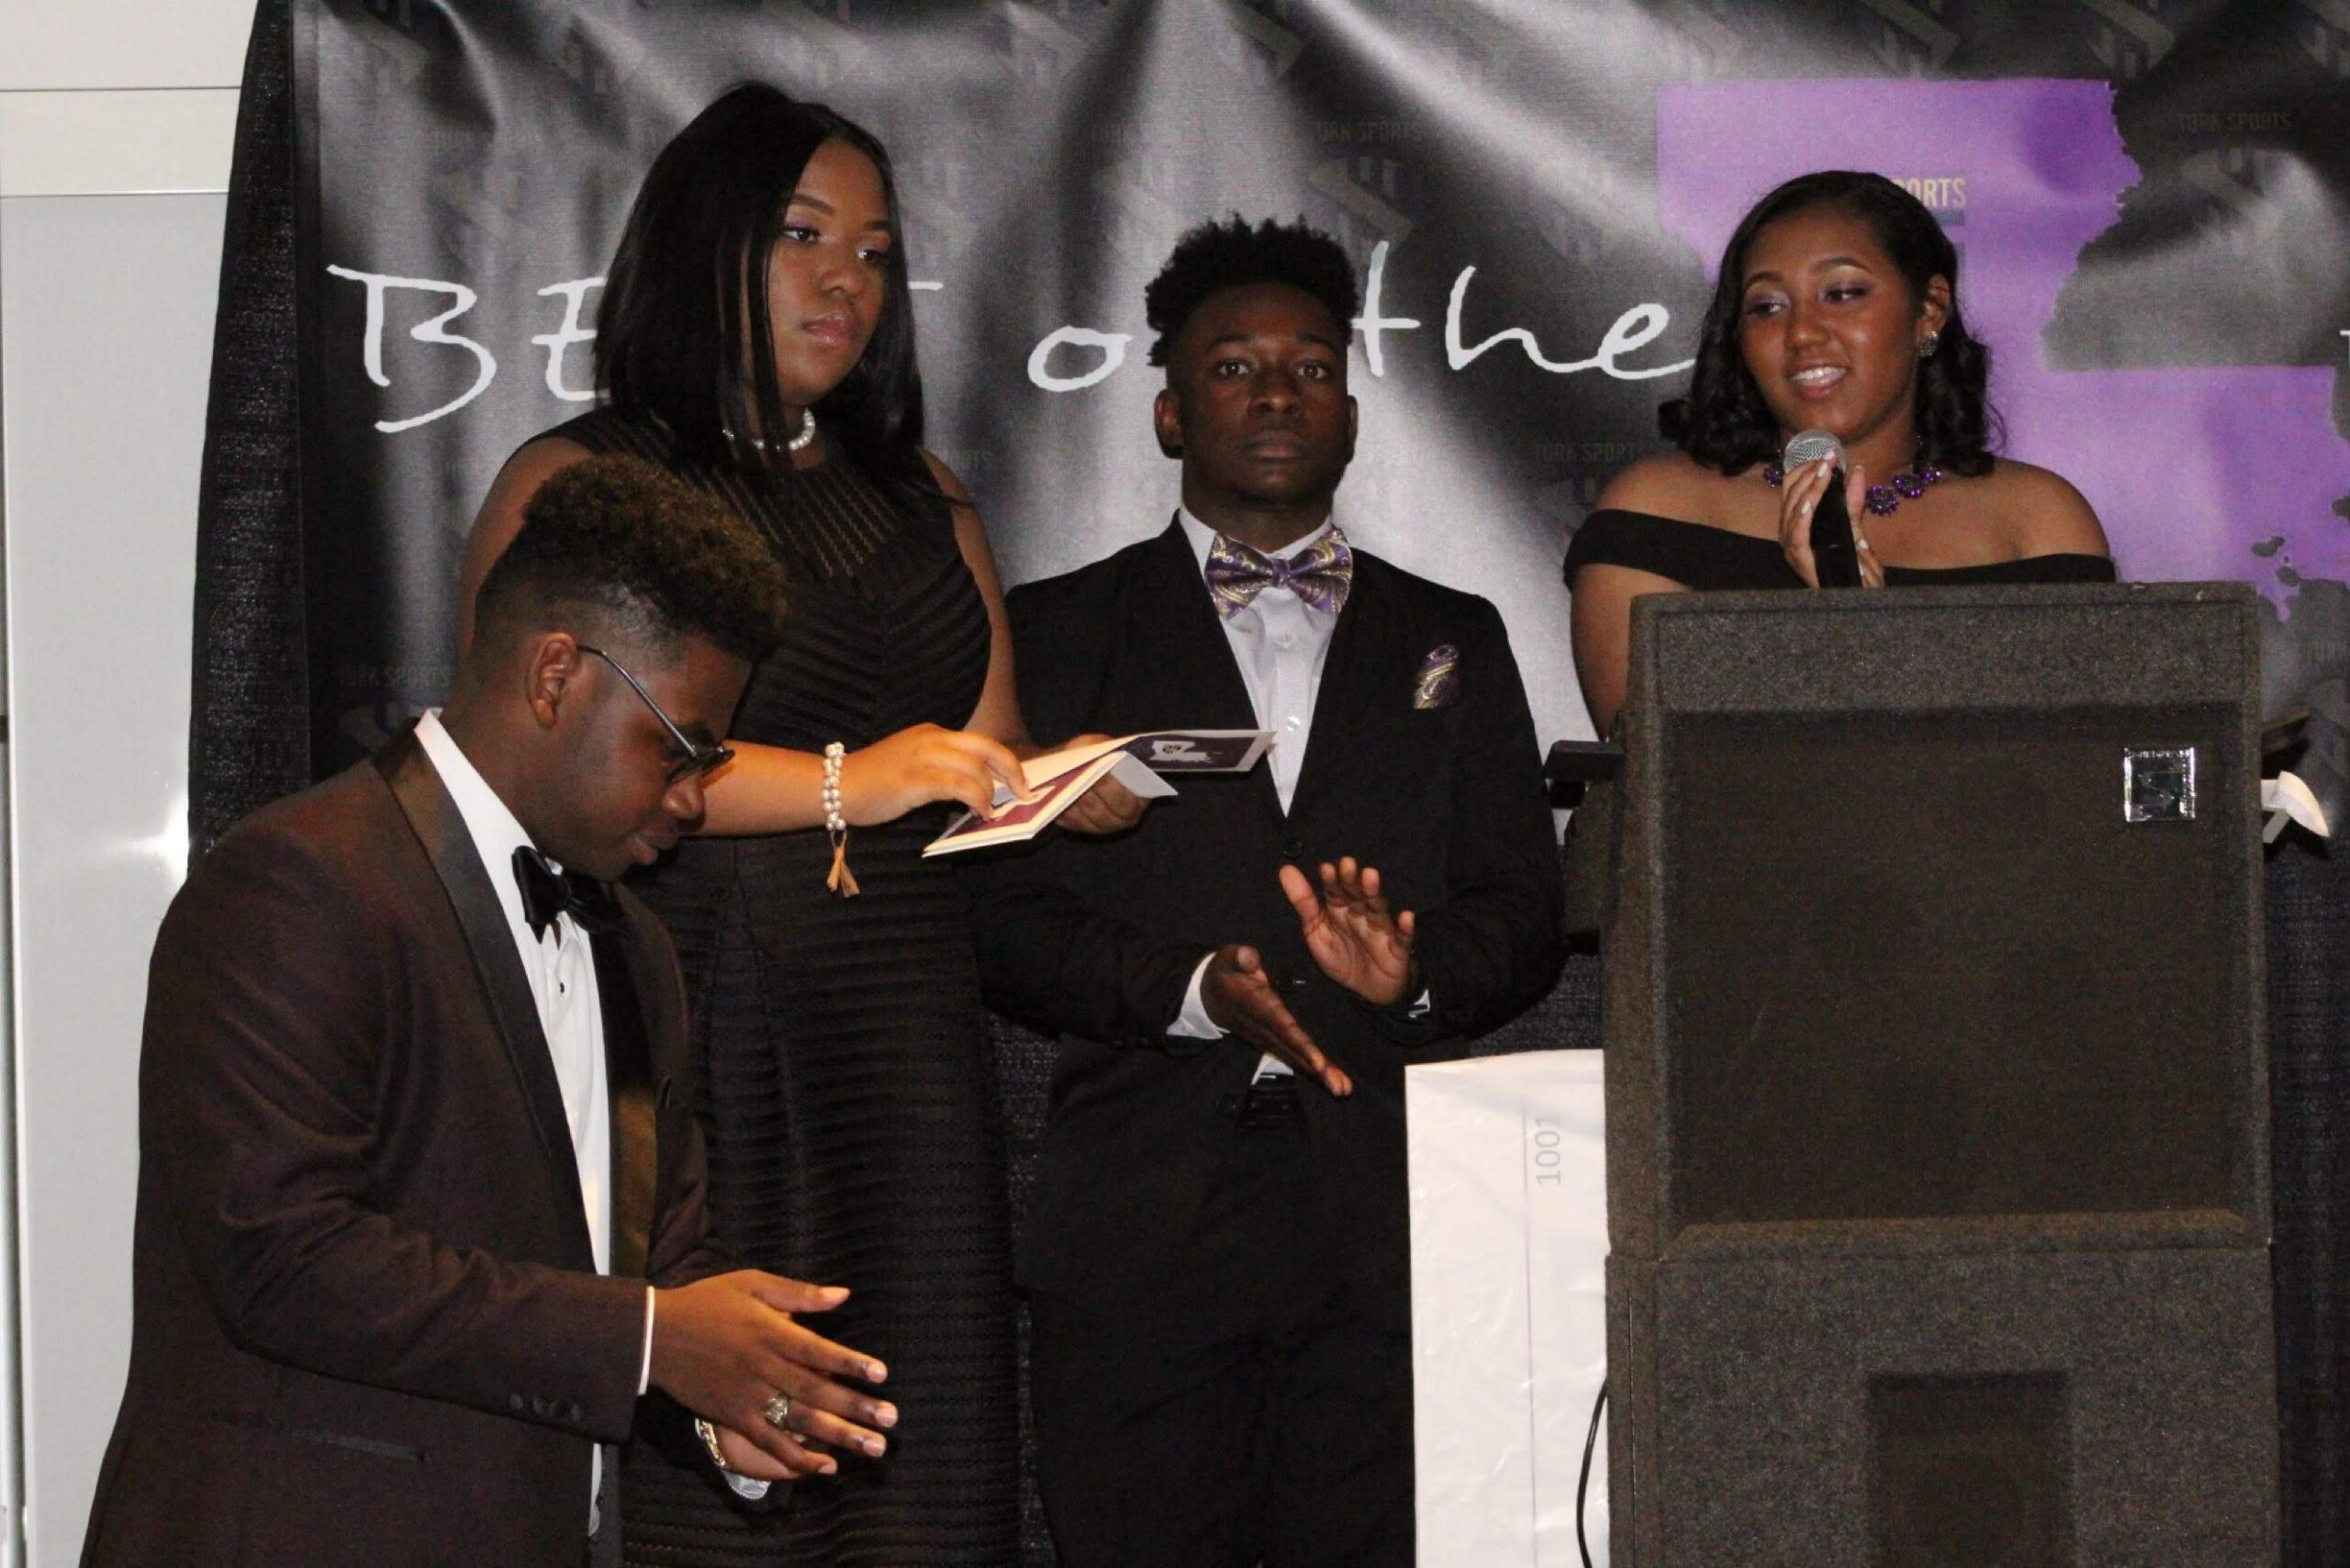 """Members of Turk's Team Share a Thought with attendees- (left to right) Earl """"Turk"""" Mackie, Jazmyn Mackie, Lance Jones & Amari Hurst"""